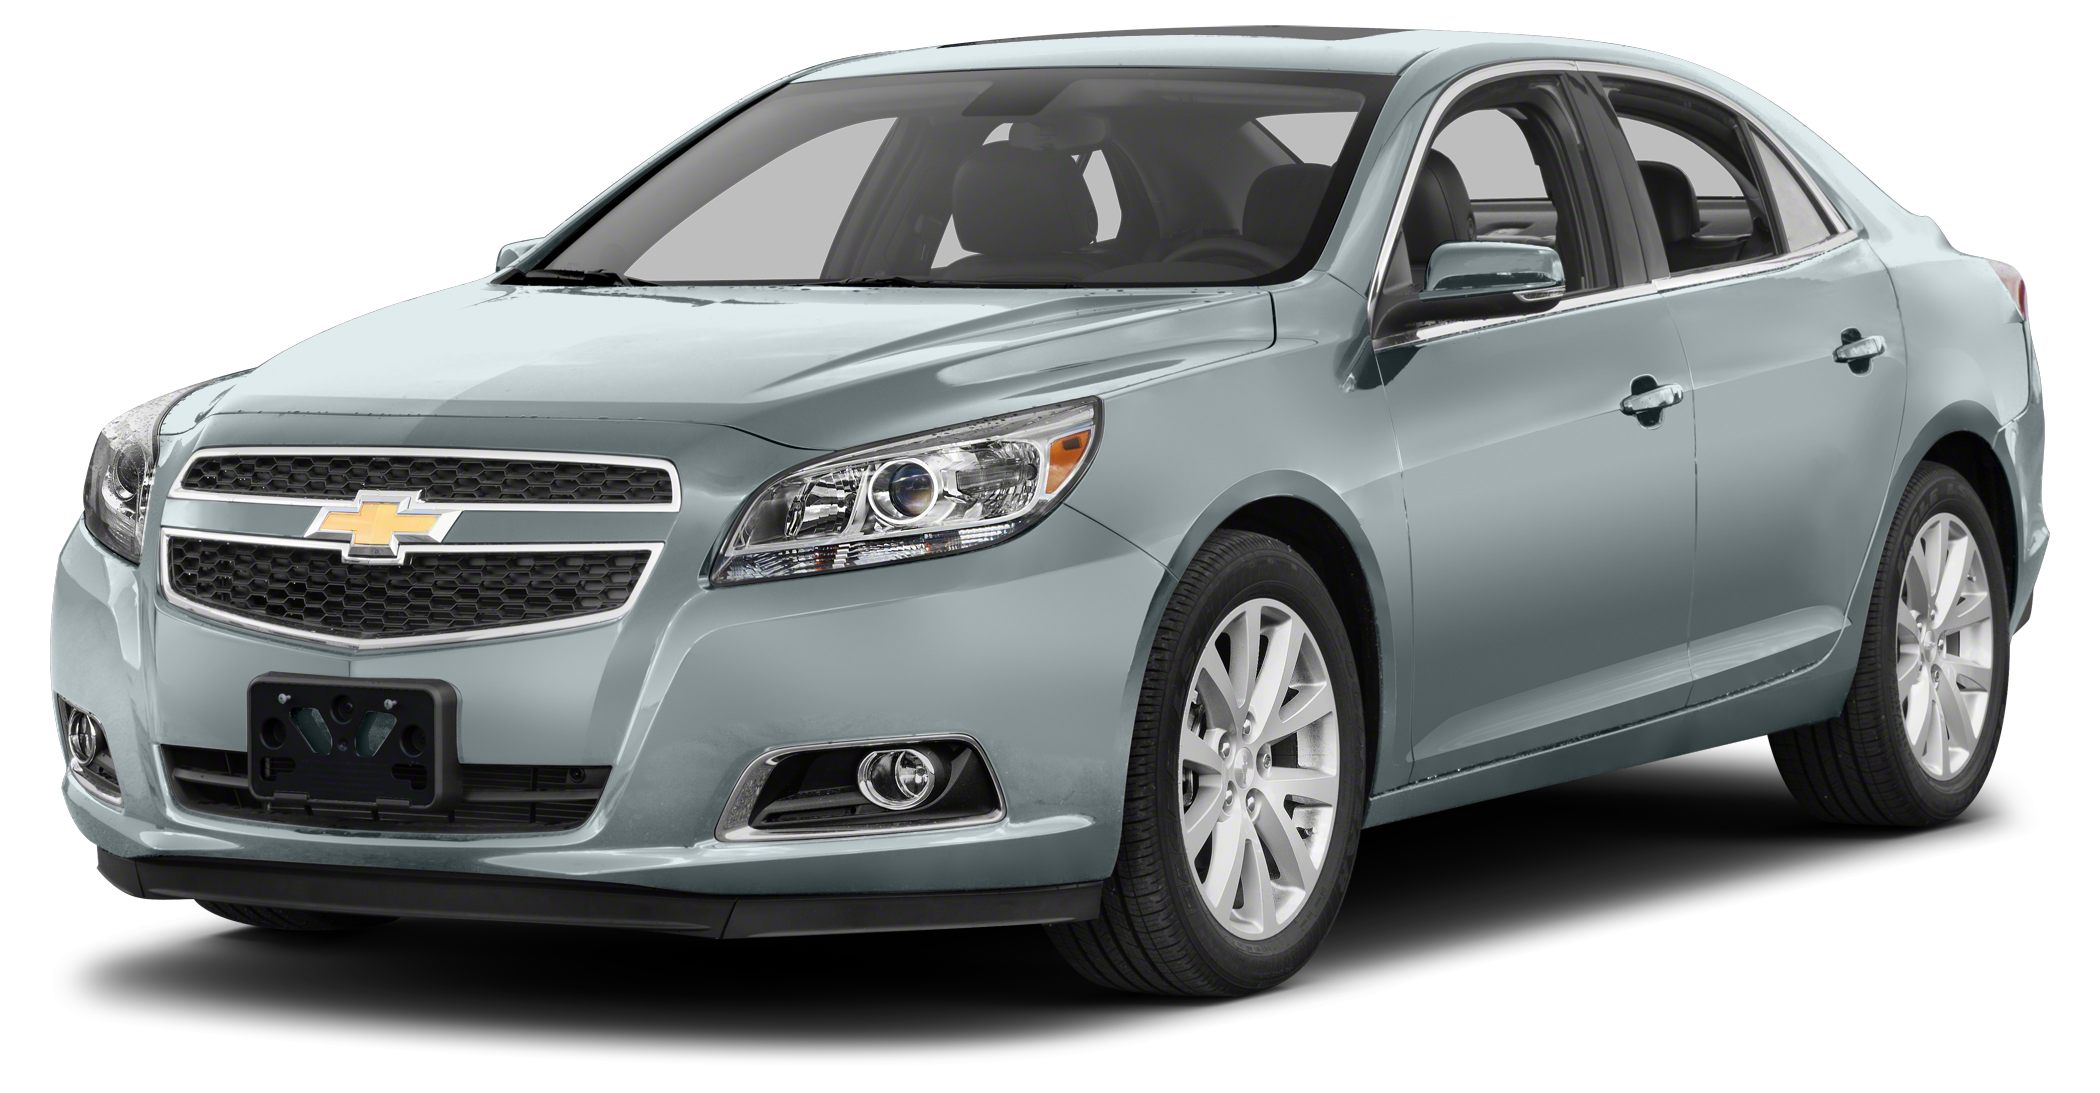 2013 Chevrolet Malibu LT w1LT Excellent Condition CARFAX 1-Owner ONLY 43001 Miles FUEL EFFICI